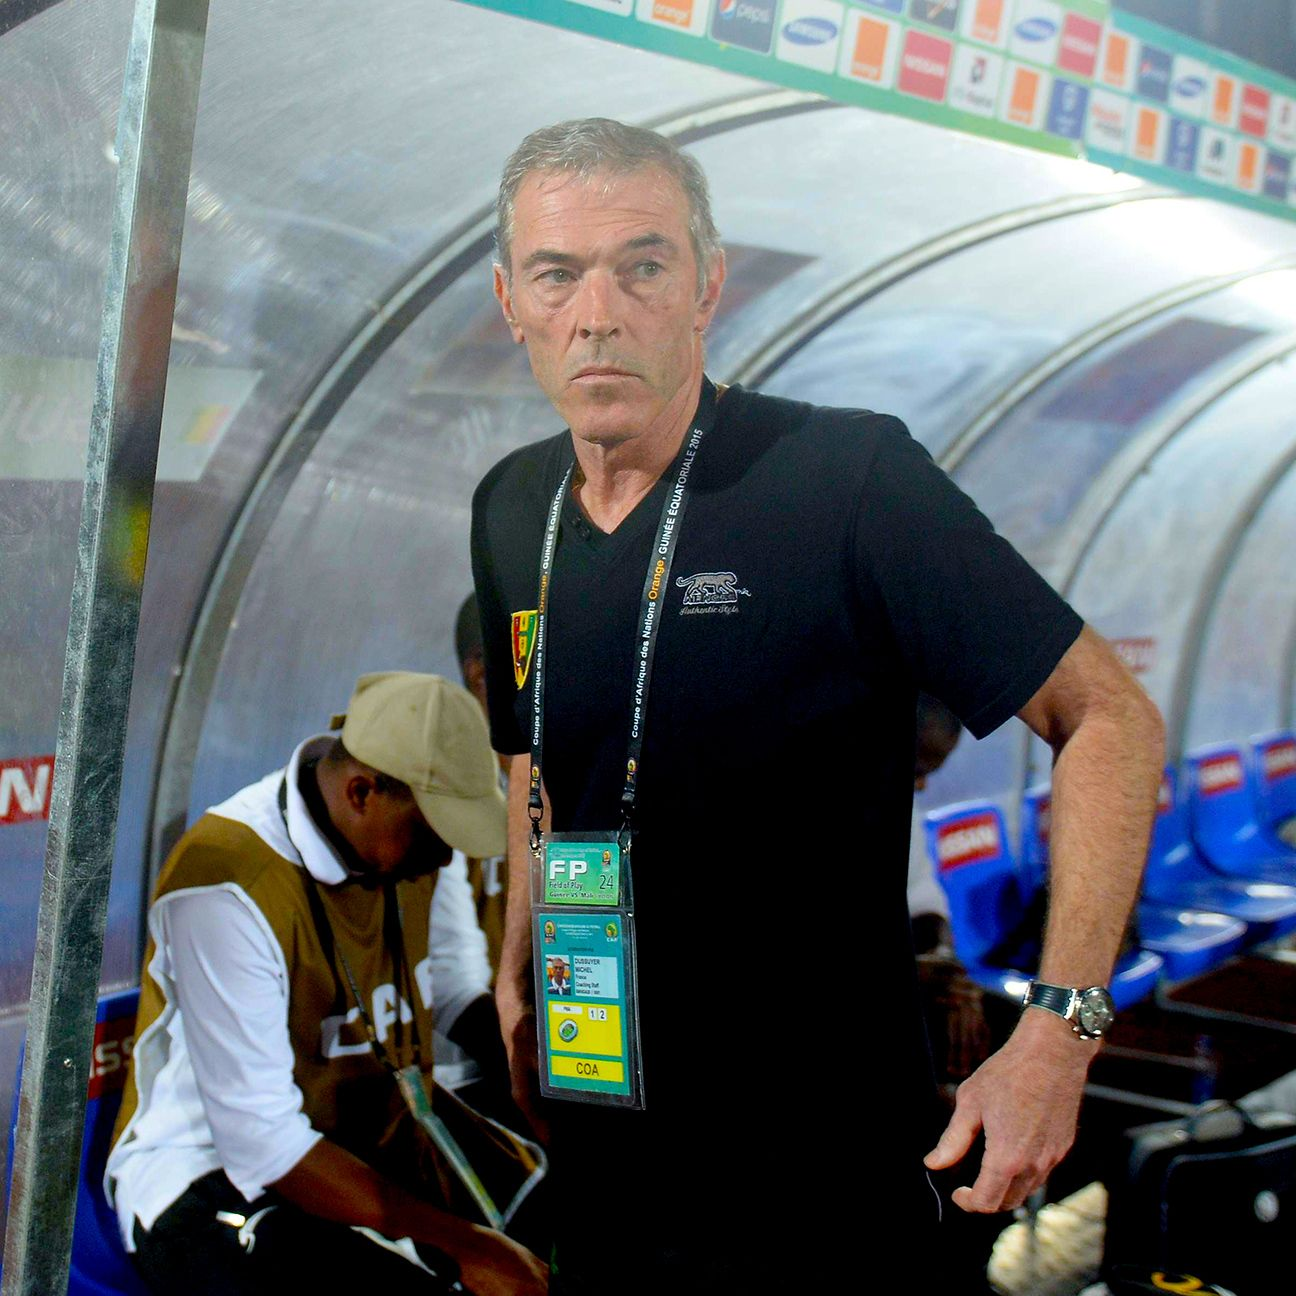 After previously coaching Benin and Guinea, Michel Dussuyer faces a new kind of pressure in leading the Ivory Coast.